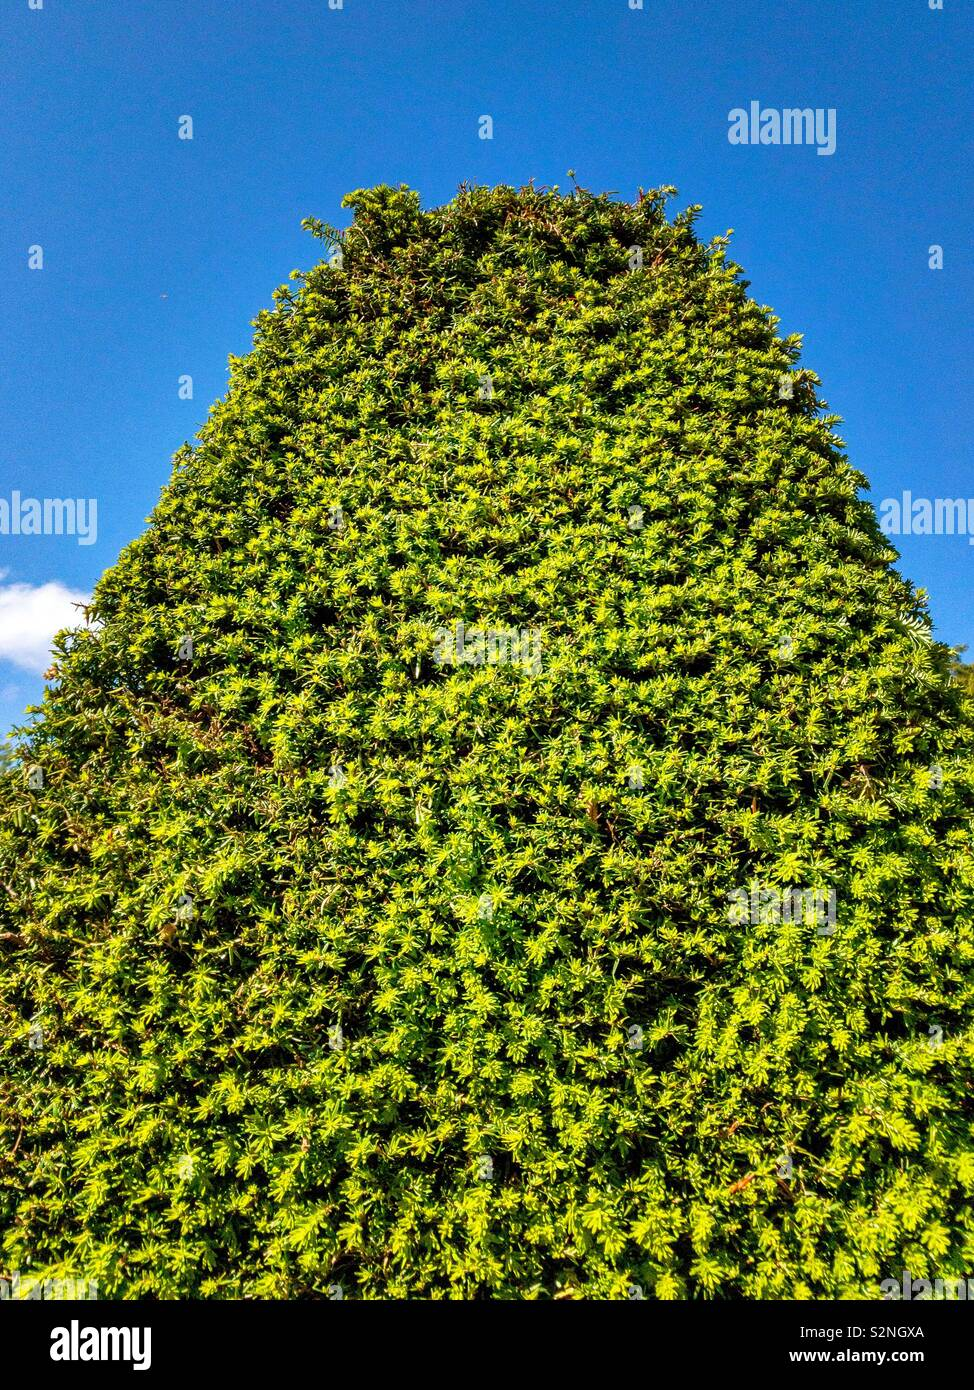 End of large trimmed yew hedge against blue sky. - Stock Image